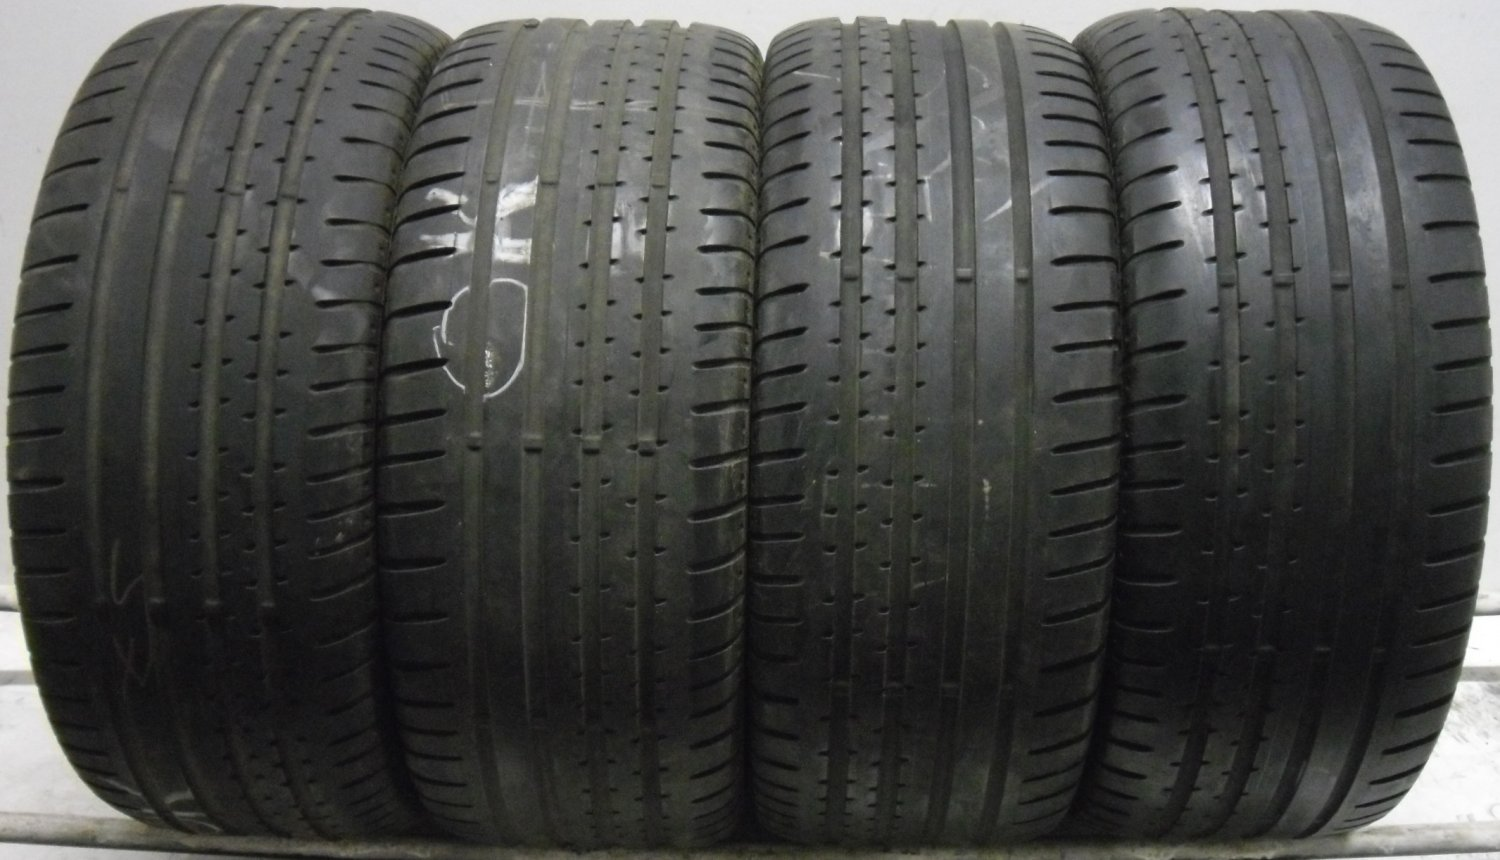 4 2454517 Continental 245 45 17 Sport Contact 2 Part Worn Used Tyres